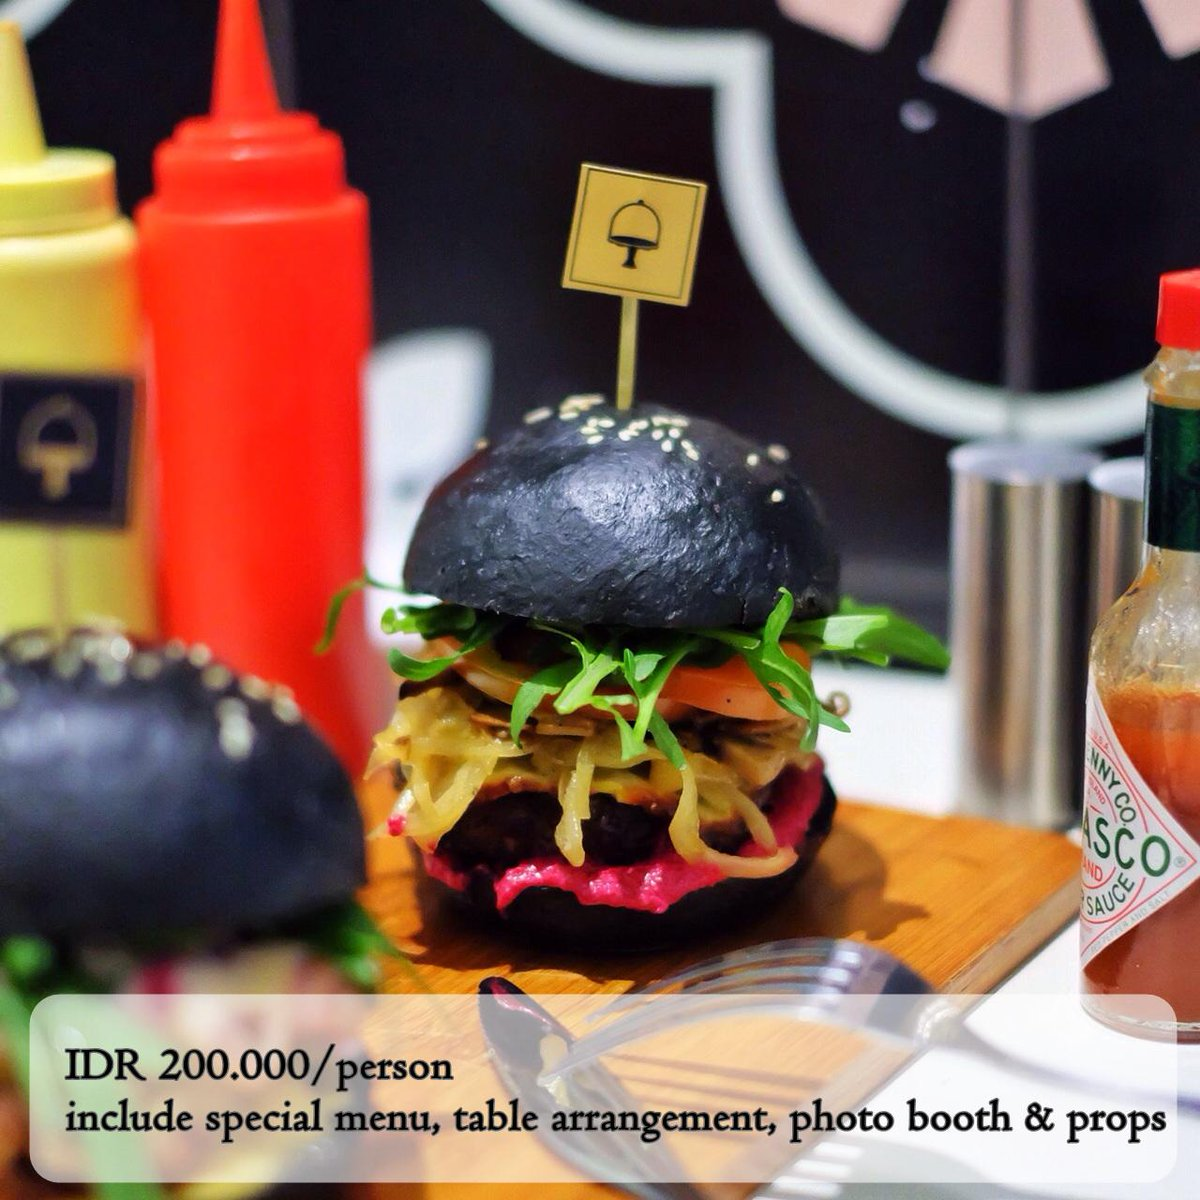 Makan malam spesial, private table, dll? #ValentinePackage by @Sugarush_bdg. 14 Feb, 7-9PM. RSVP 022-4236618 http://t.co/IuG7clSm0C